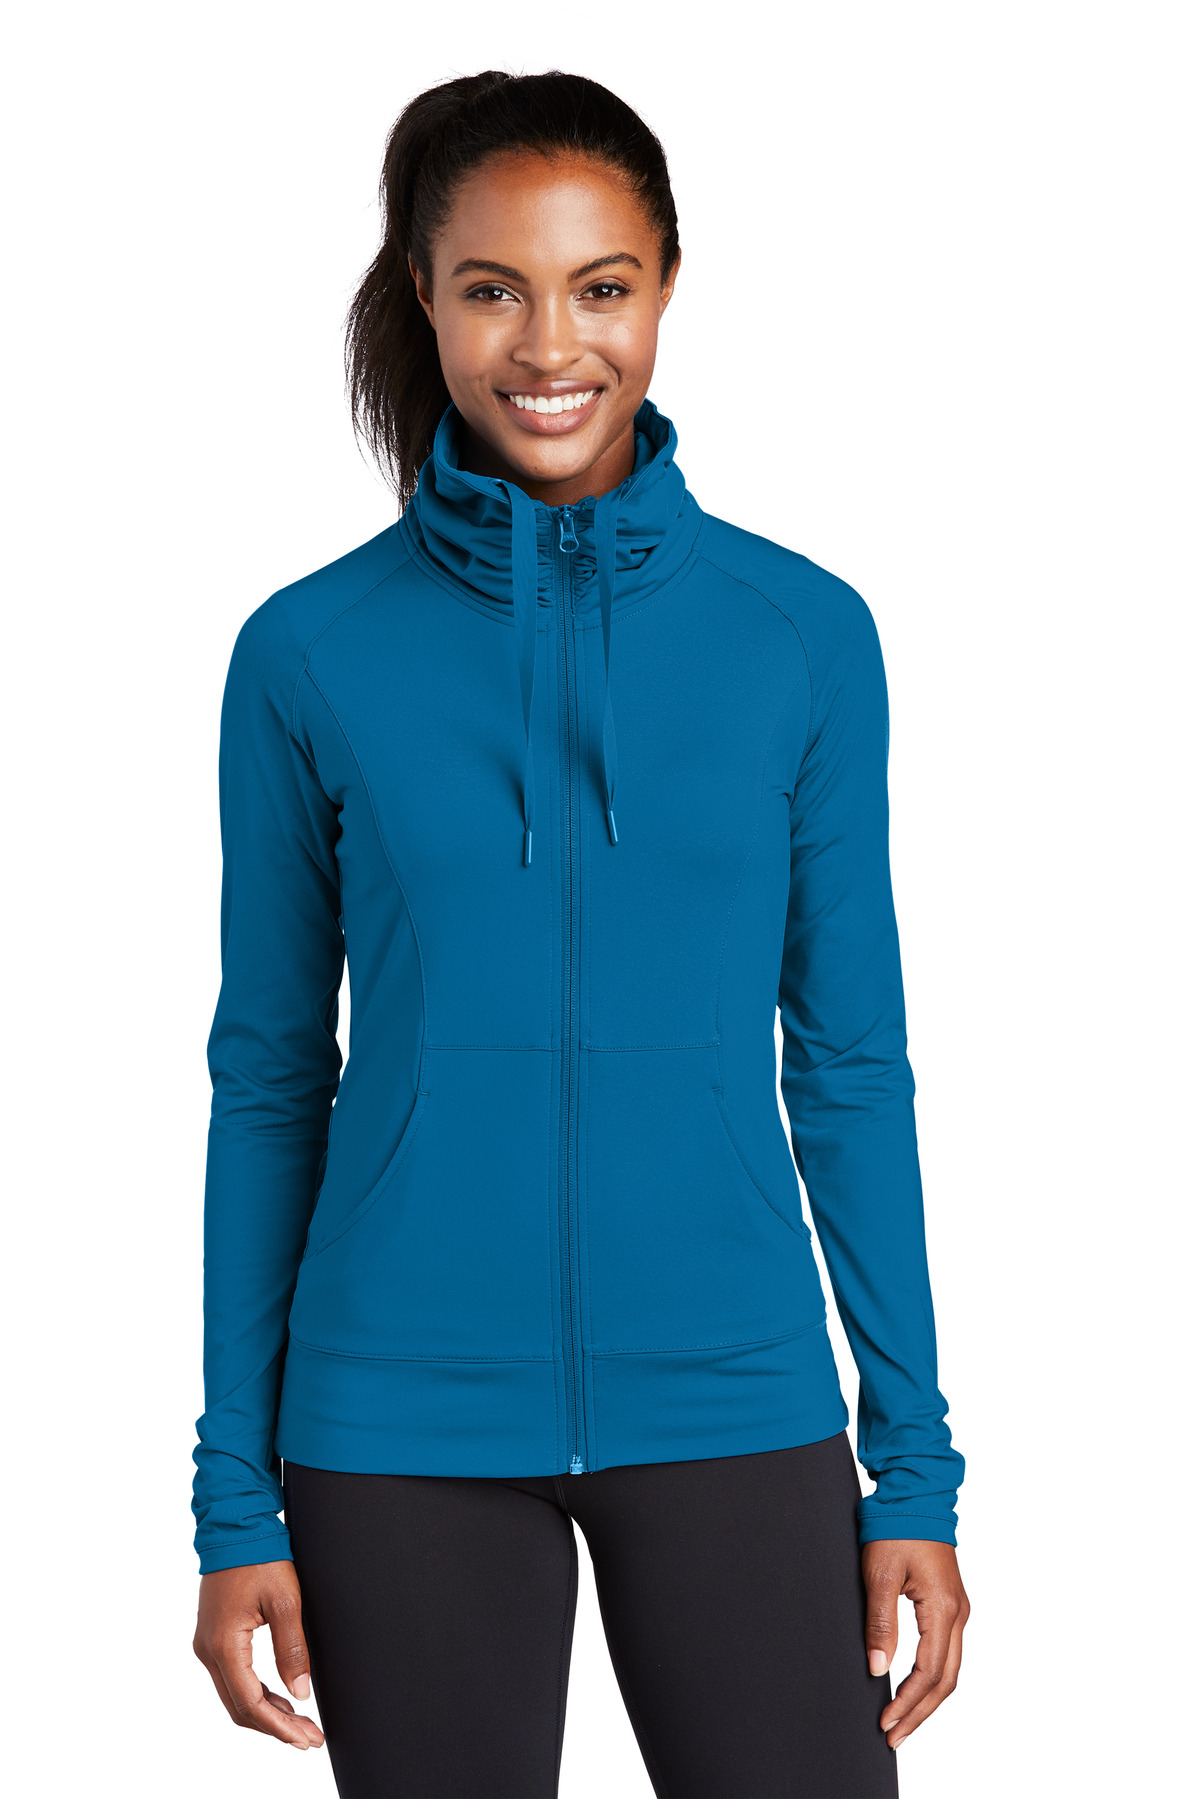 Sport-Tek ®  Ladies Sport-Wick ®  Stretch Full-Zip Jacket. LST852 - Peacock Blue